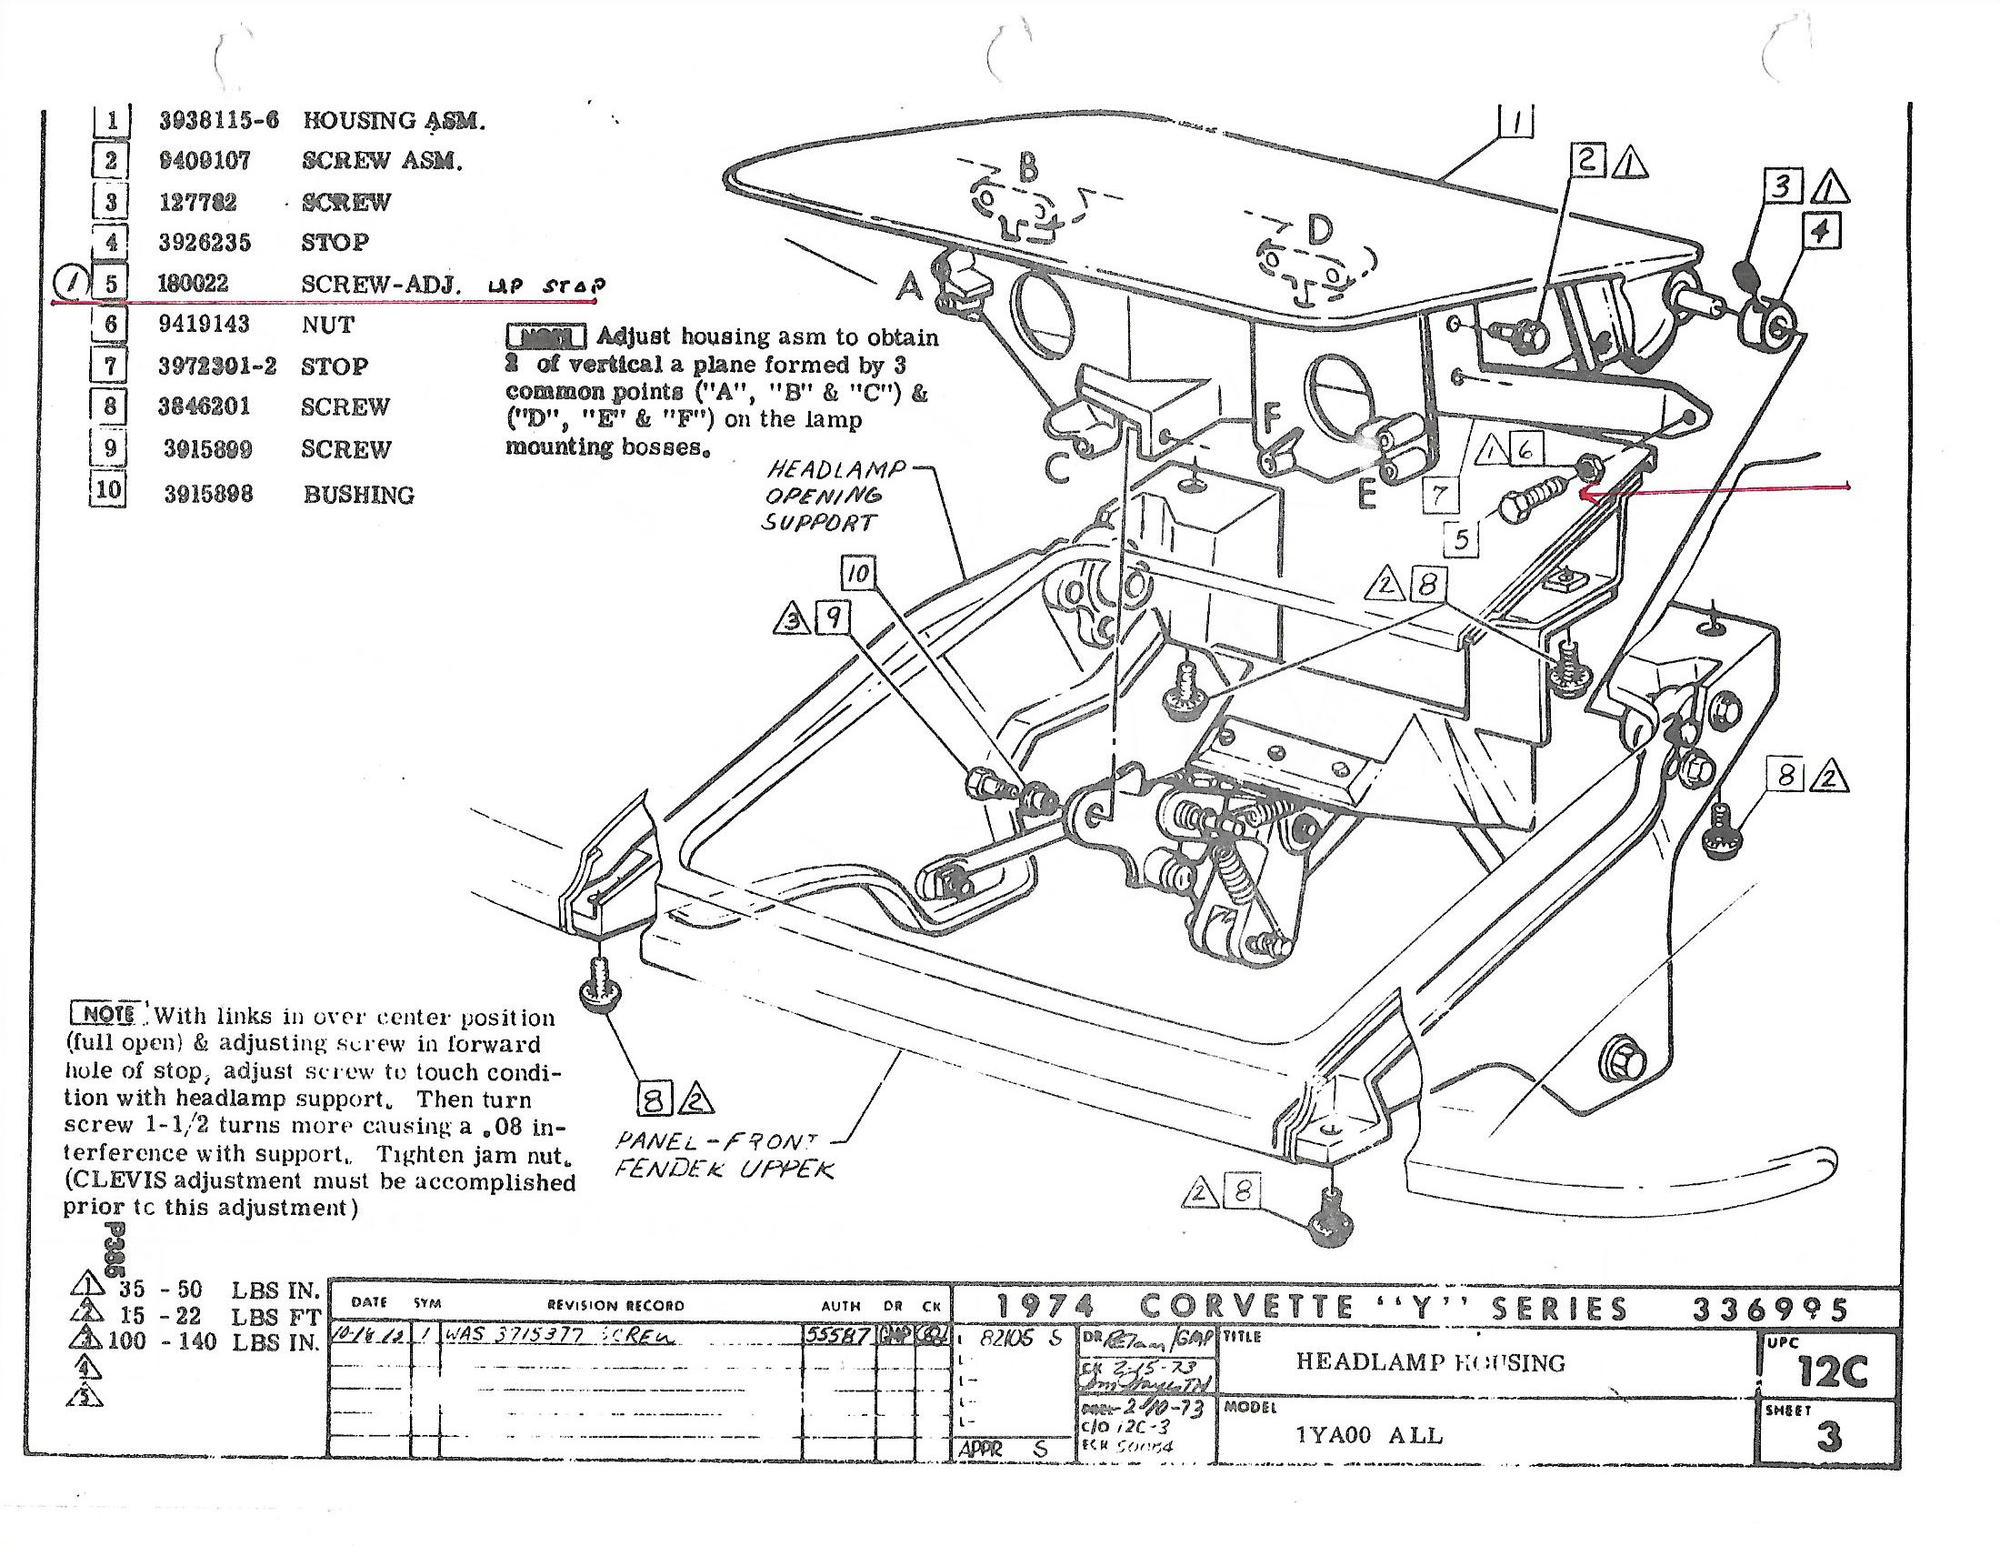 Mounting Diagram Th400 Trusted Wiring Diagrams Trans C3 Corvette Parts Circuit And Hub U2022 Western Snow Plow Solenoid